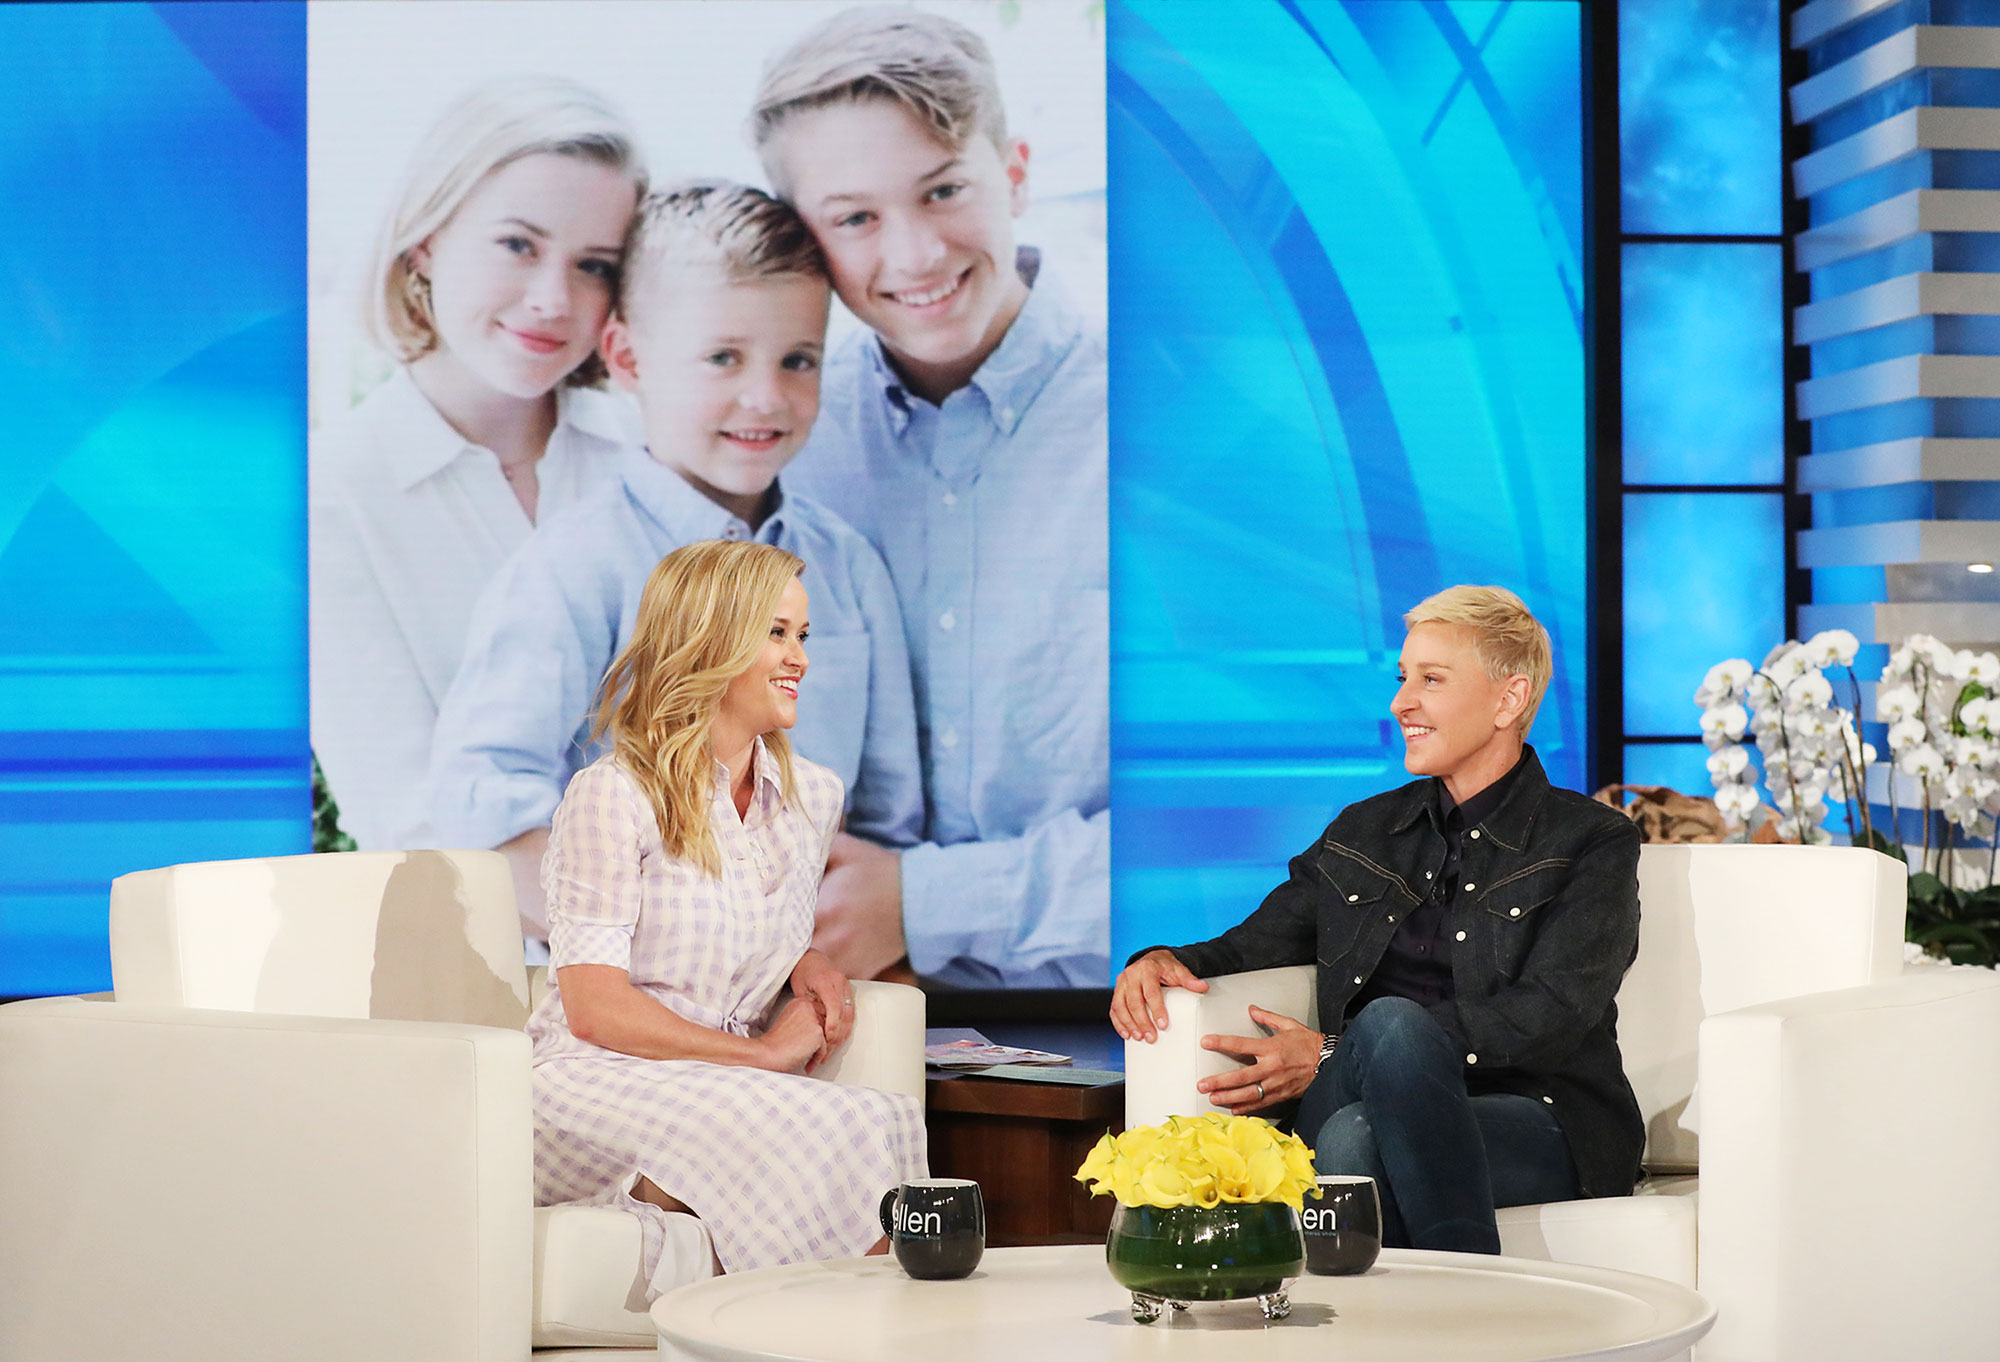 Reese Witherspoon The Ellen DeGeneres Show Daughter Ava Phillippe Crying College